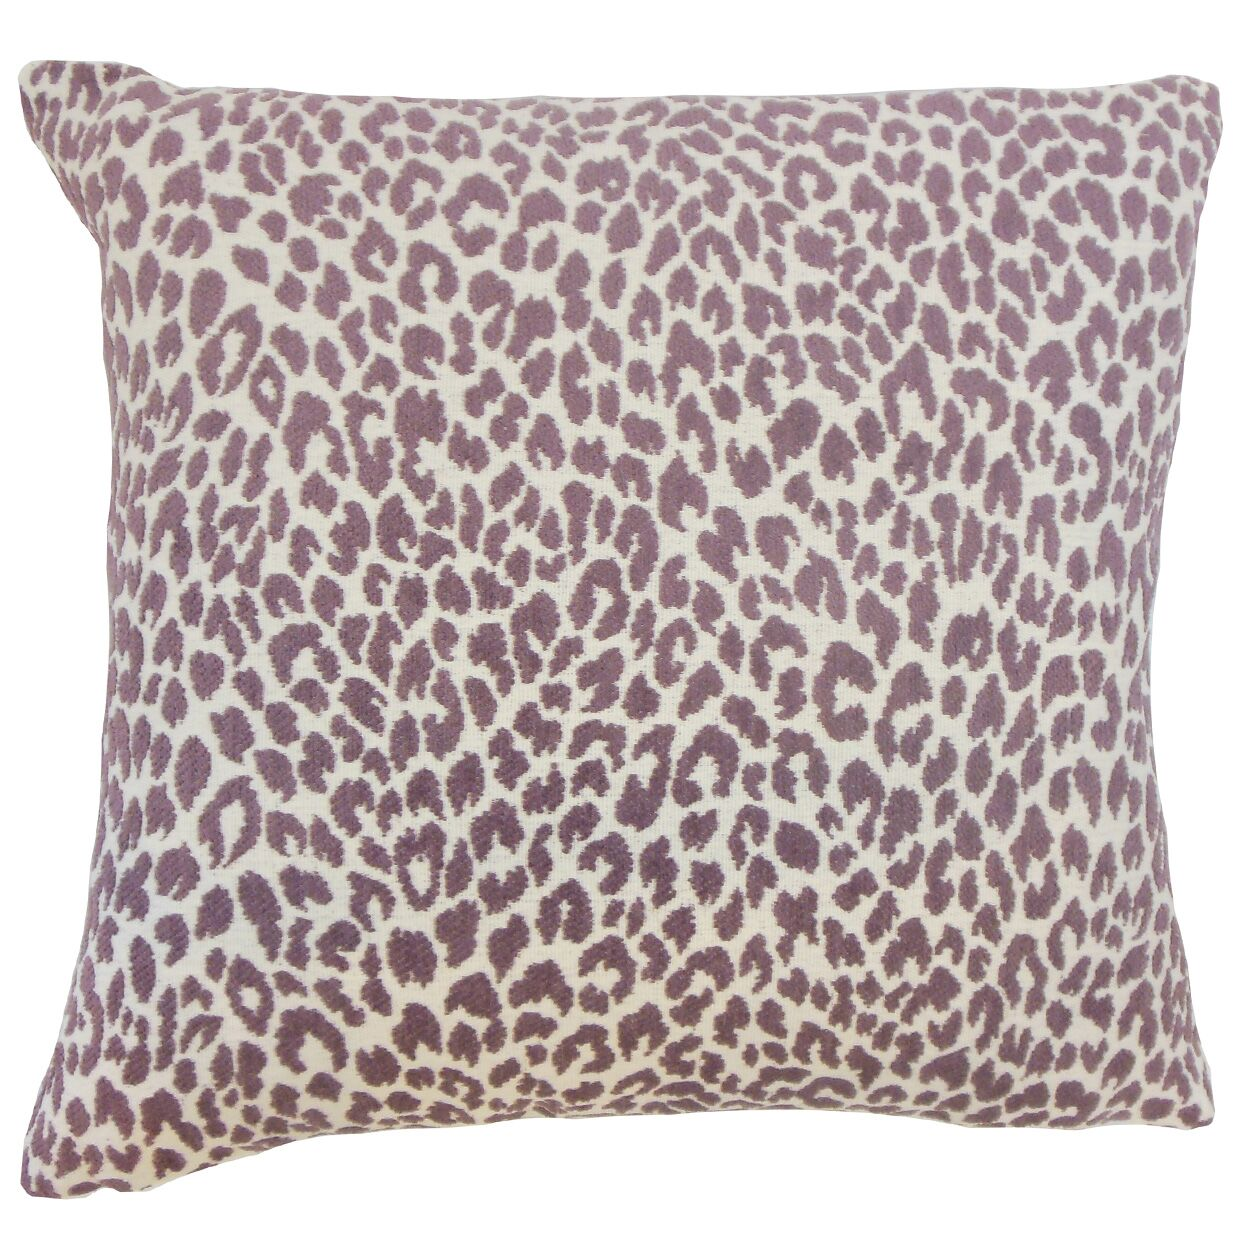 Pesach Animal Print Bedding Sham Size: Euro, Color: Orchid